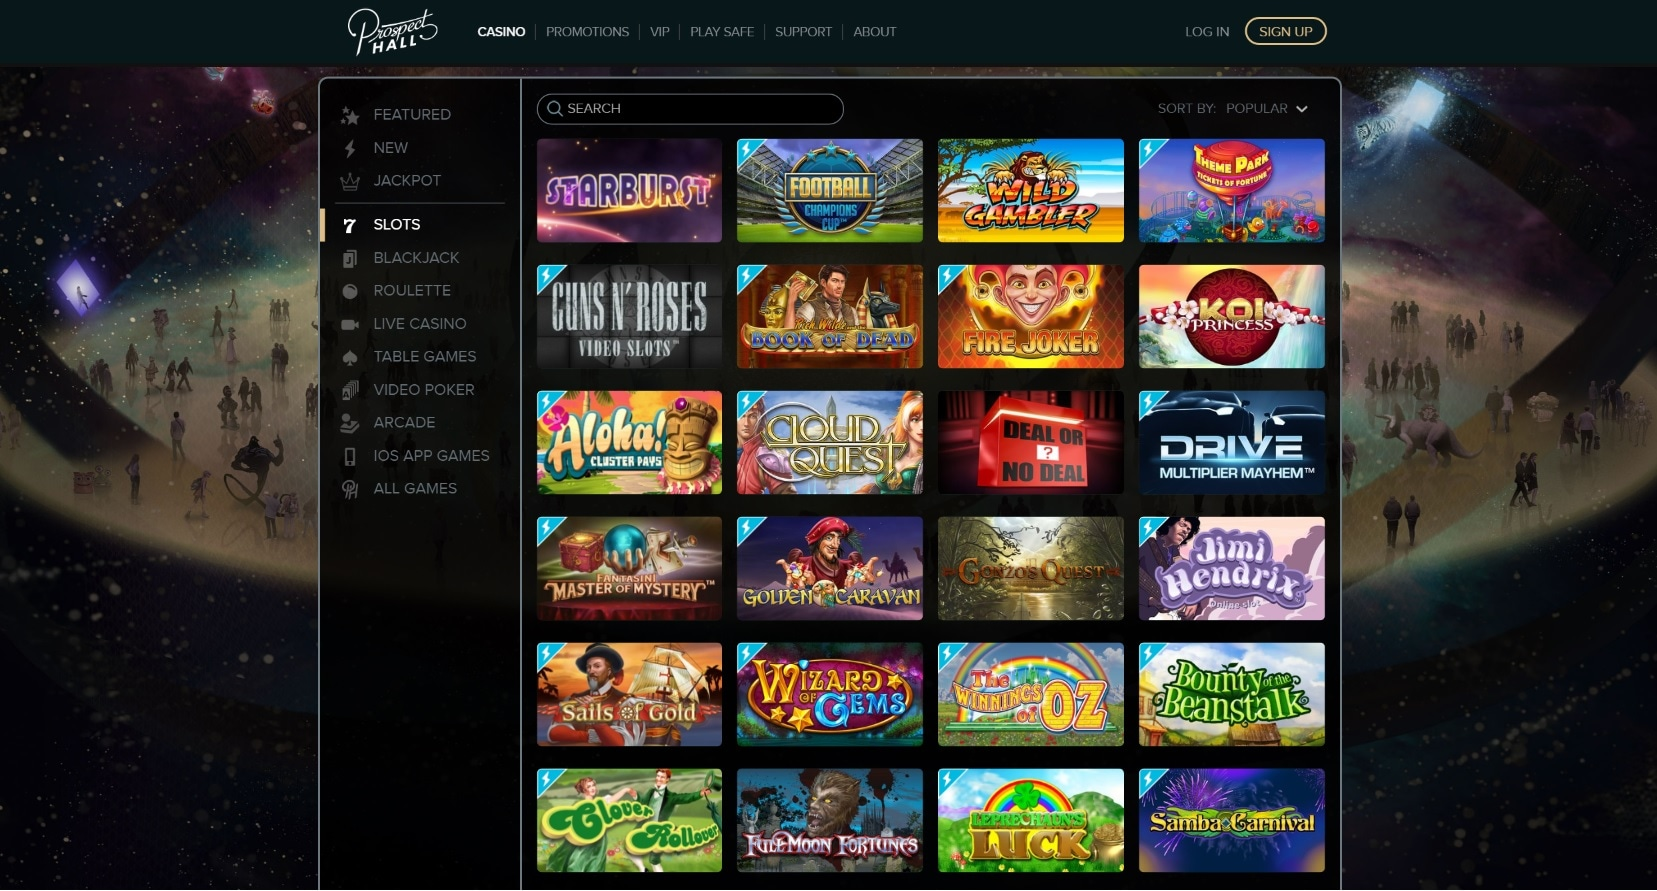 paypal casino site prospect hall games